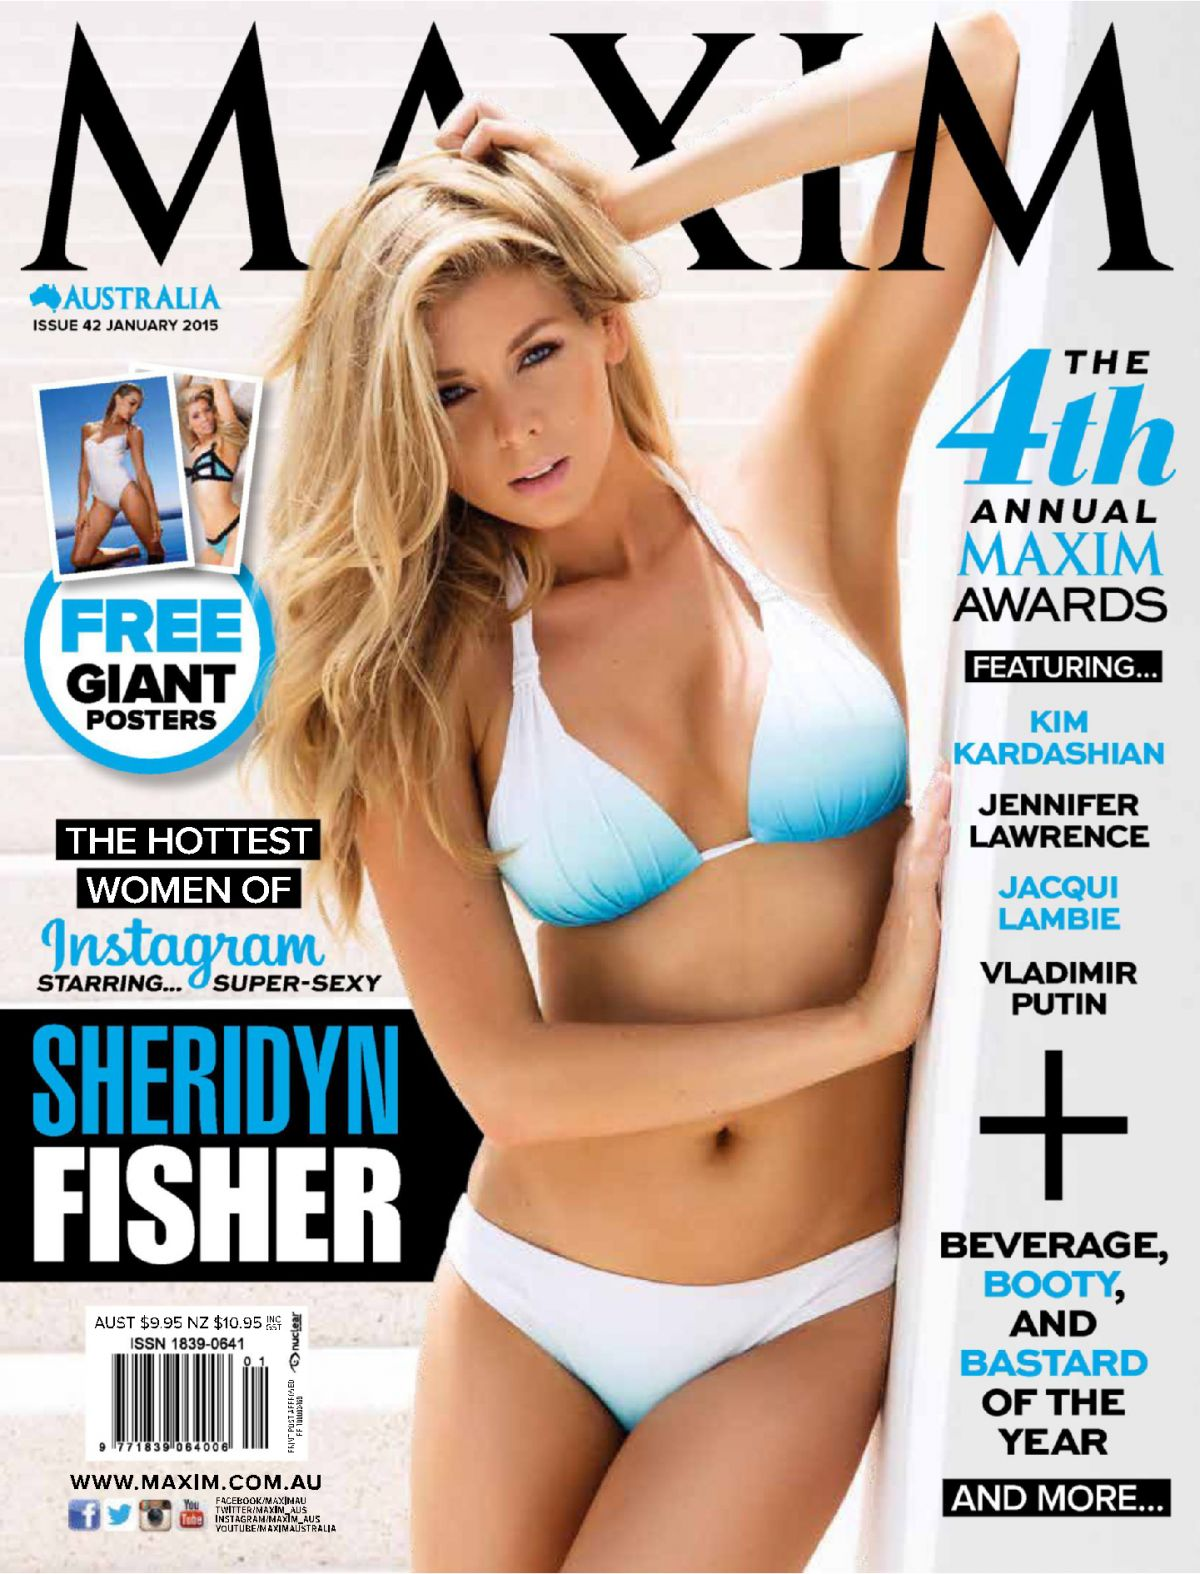 SHERIDYN FISHER in Maxim Magazine, Australia January 2015 Issue